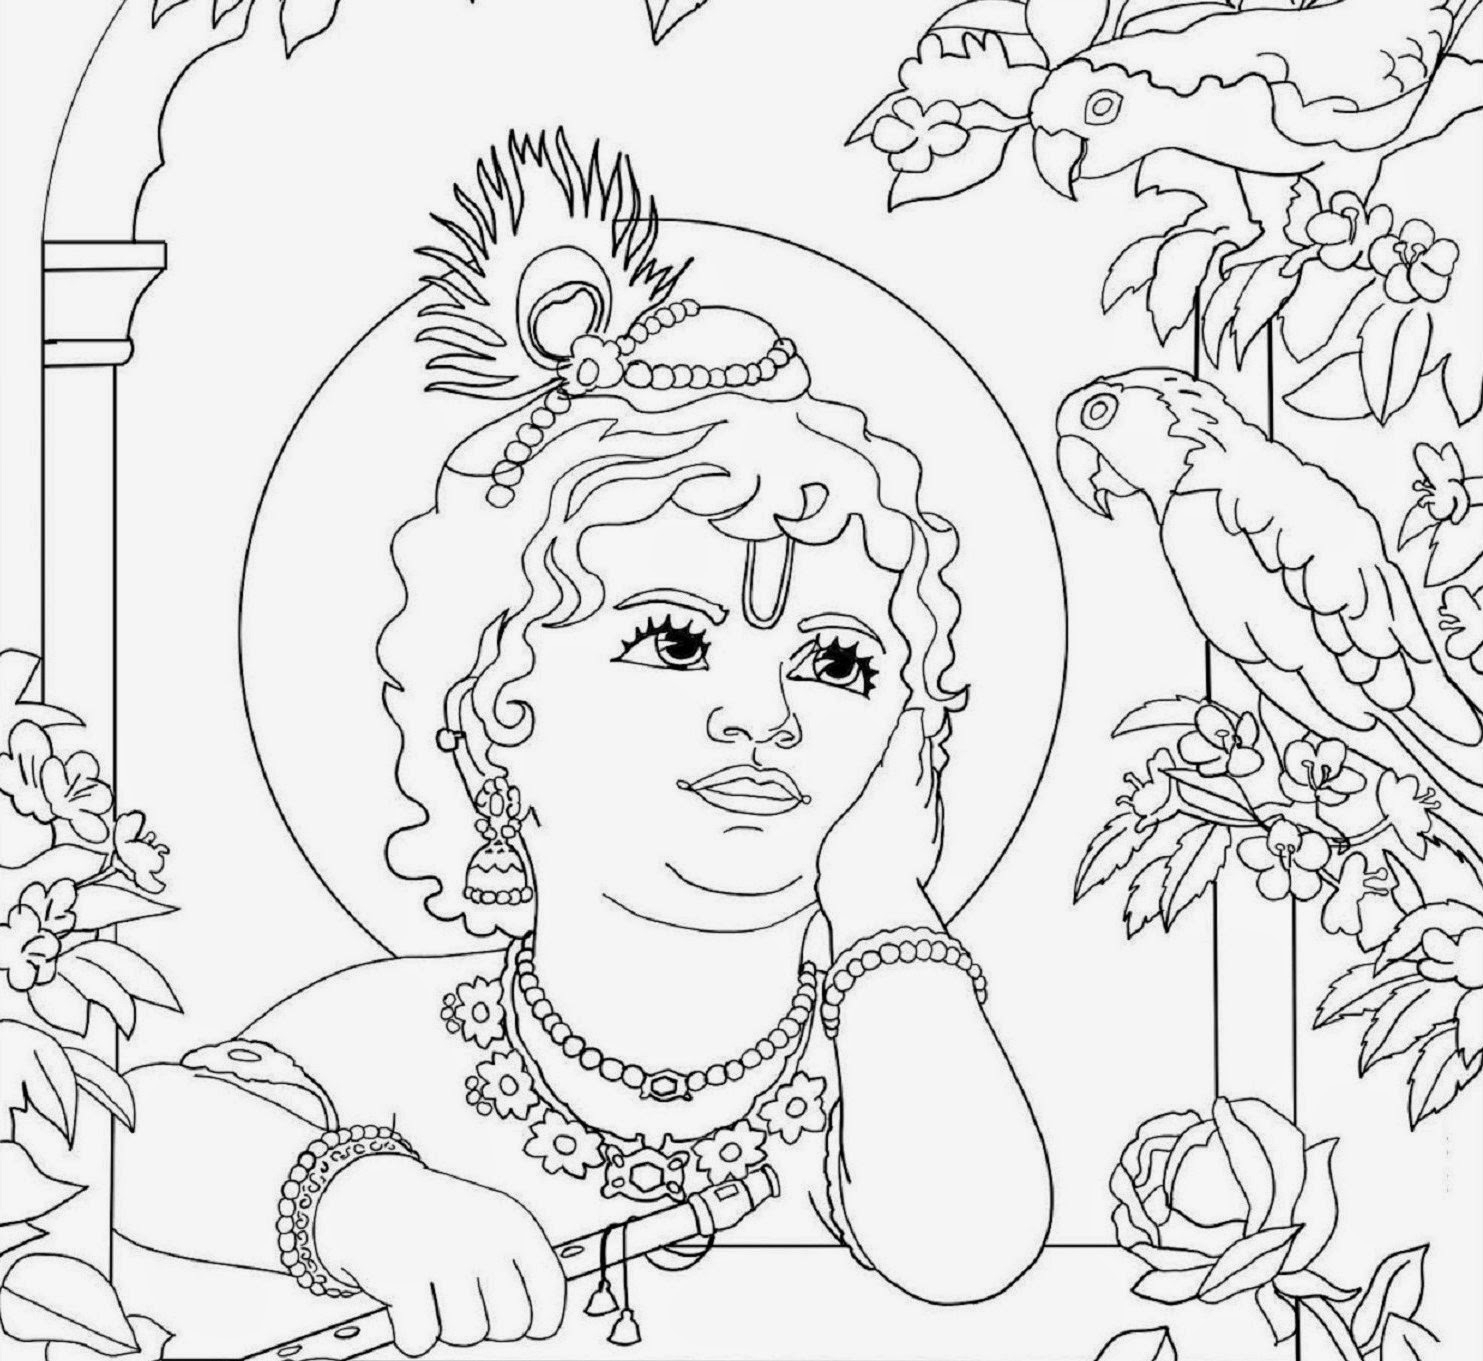 coloring pages of krishna the best free krishna drawing images download from 478 of pages krishna coloring